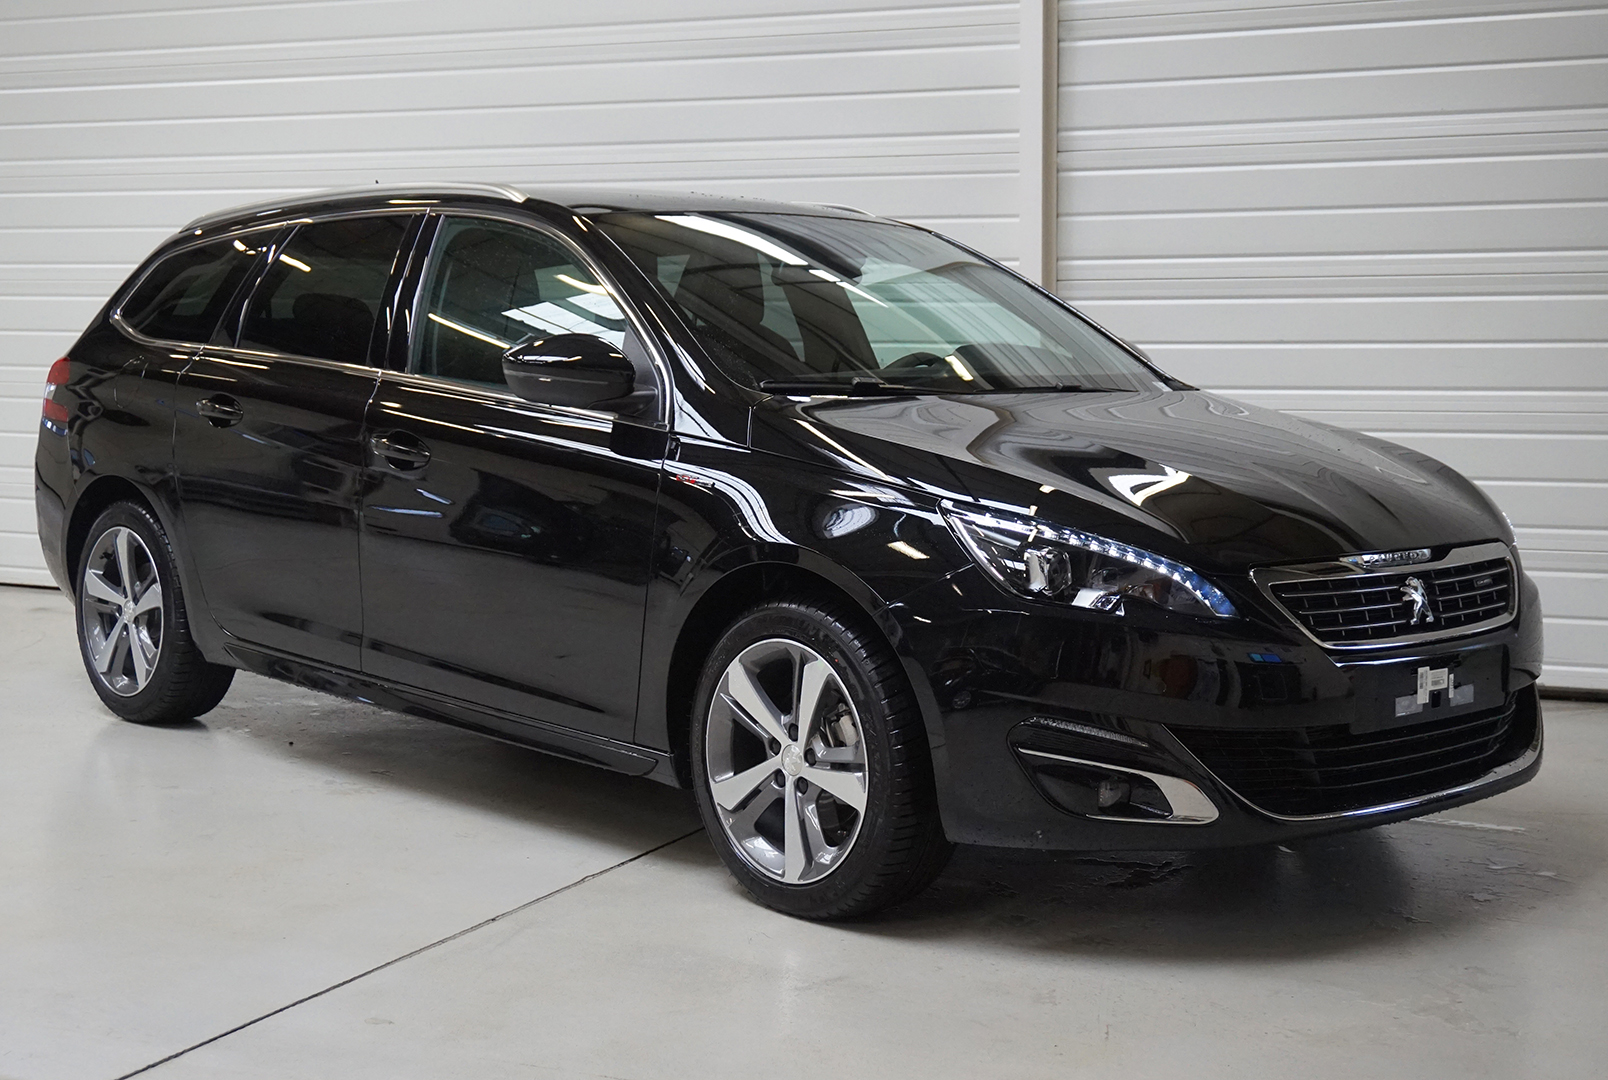 100+ [ Peugeot 308 Sw Gt Review ] | Peugeot 308 Gti 2016 Review By ...